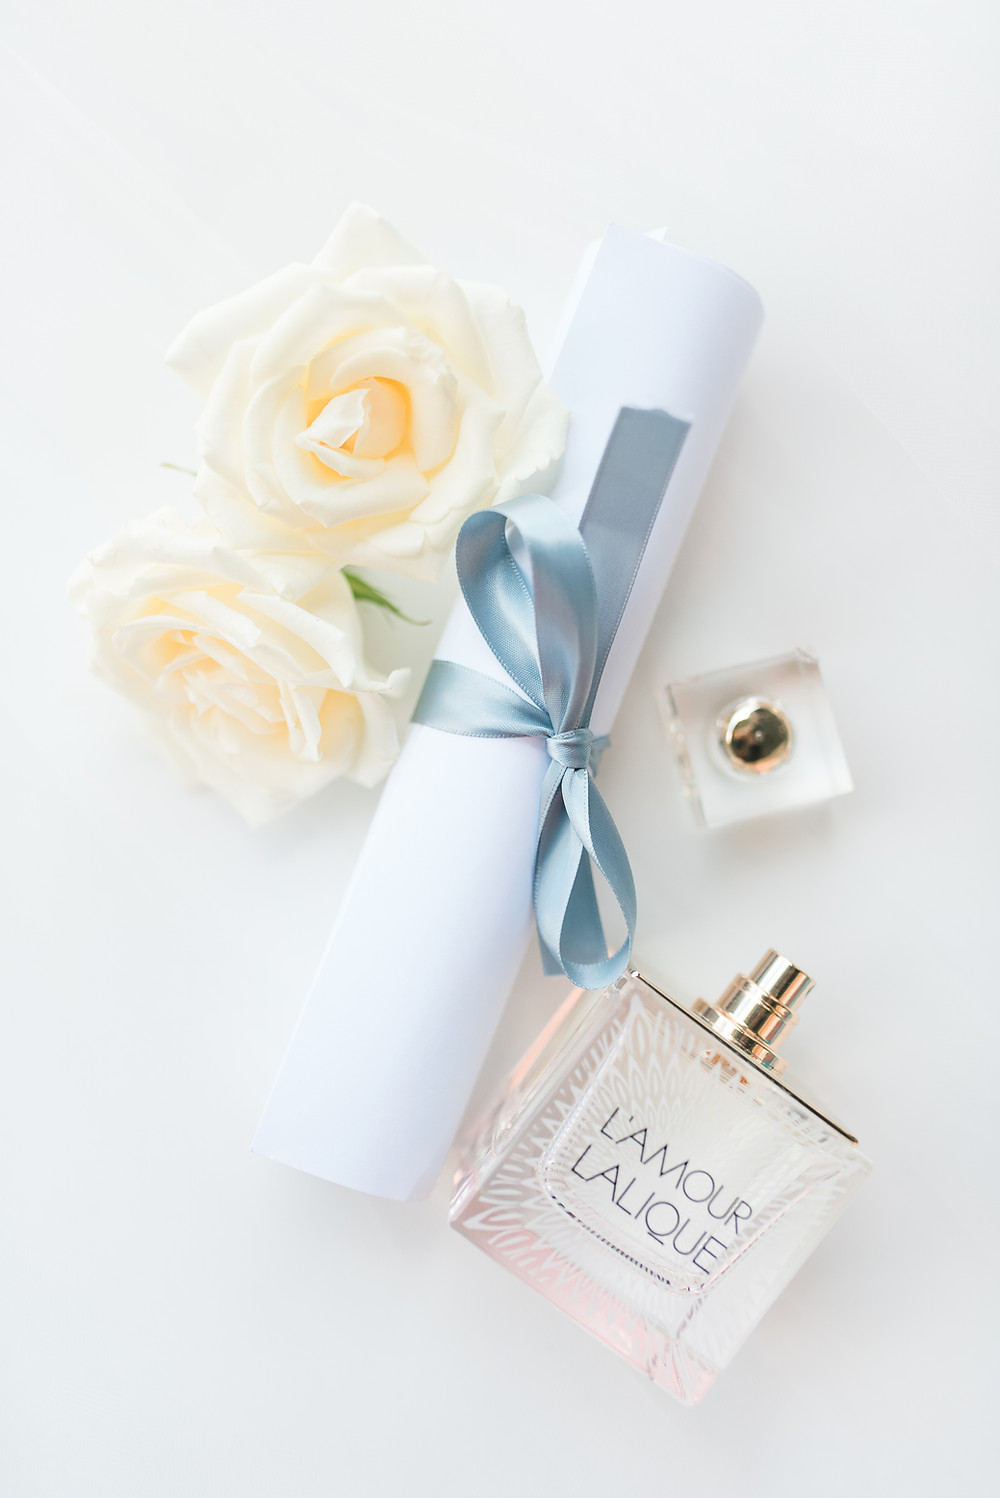 L'AMOUR LALIQ UE PERFUM FOR WEDDING DAY